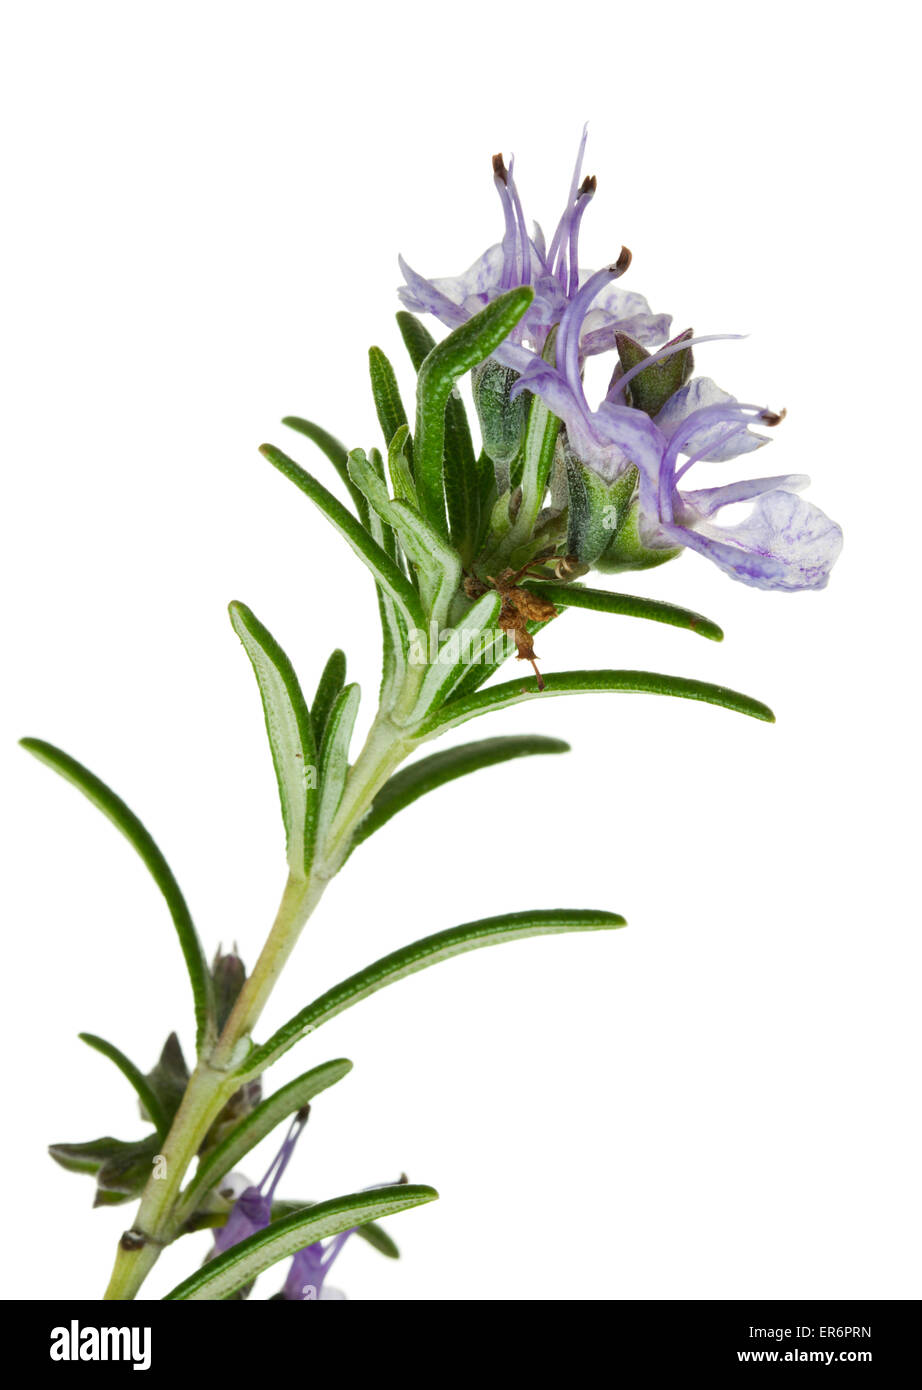 closeup of flowering rosemary twig isolated on white background - Stock Image